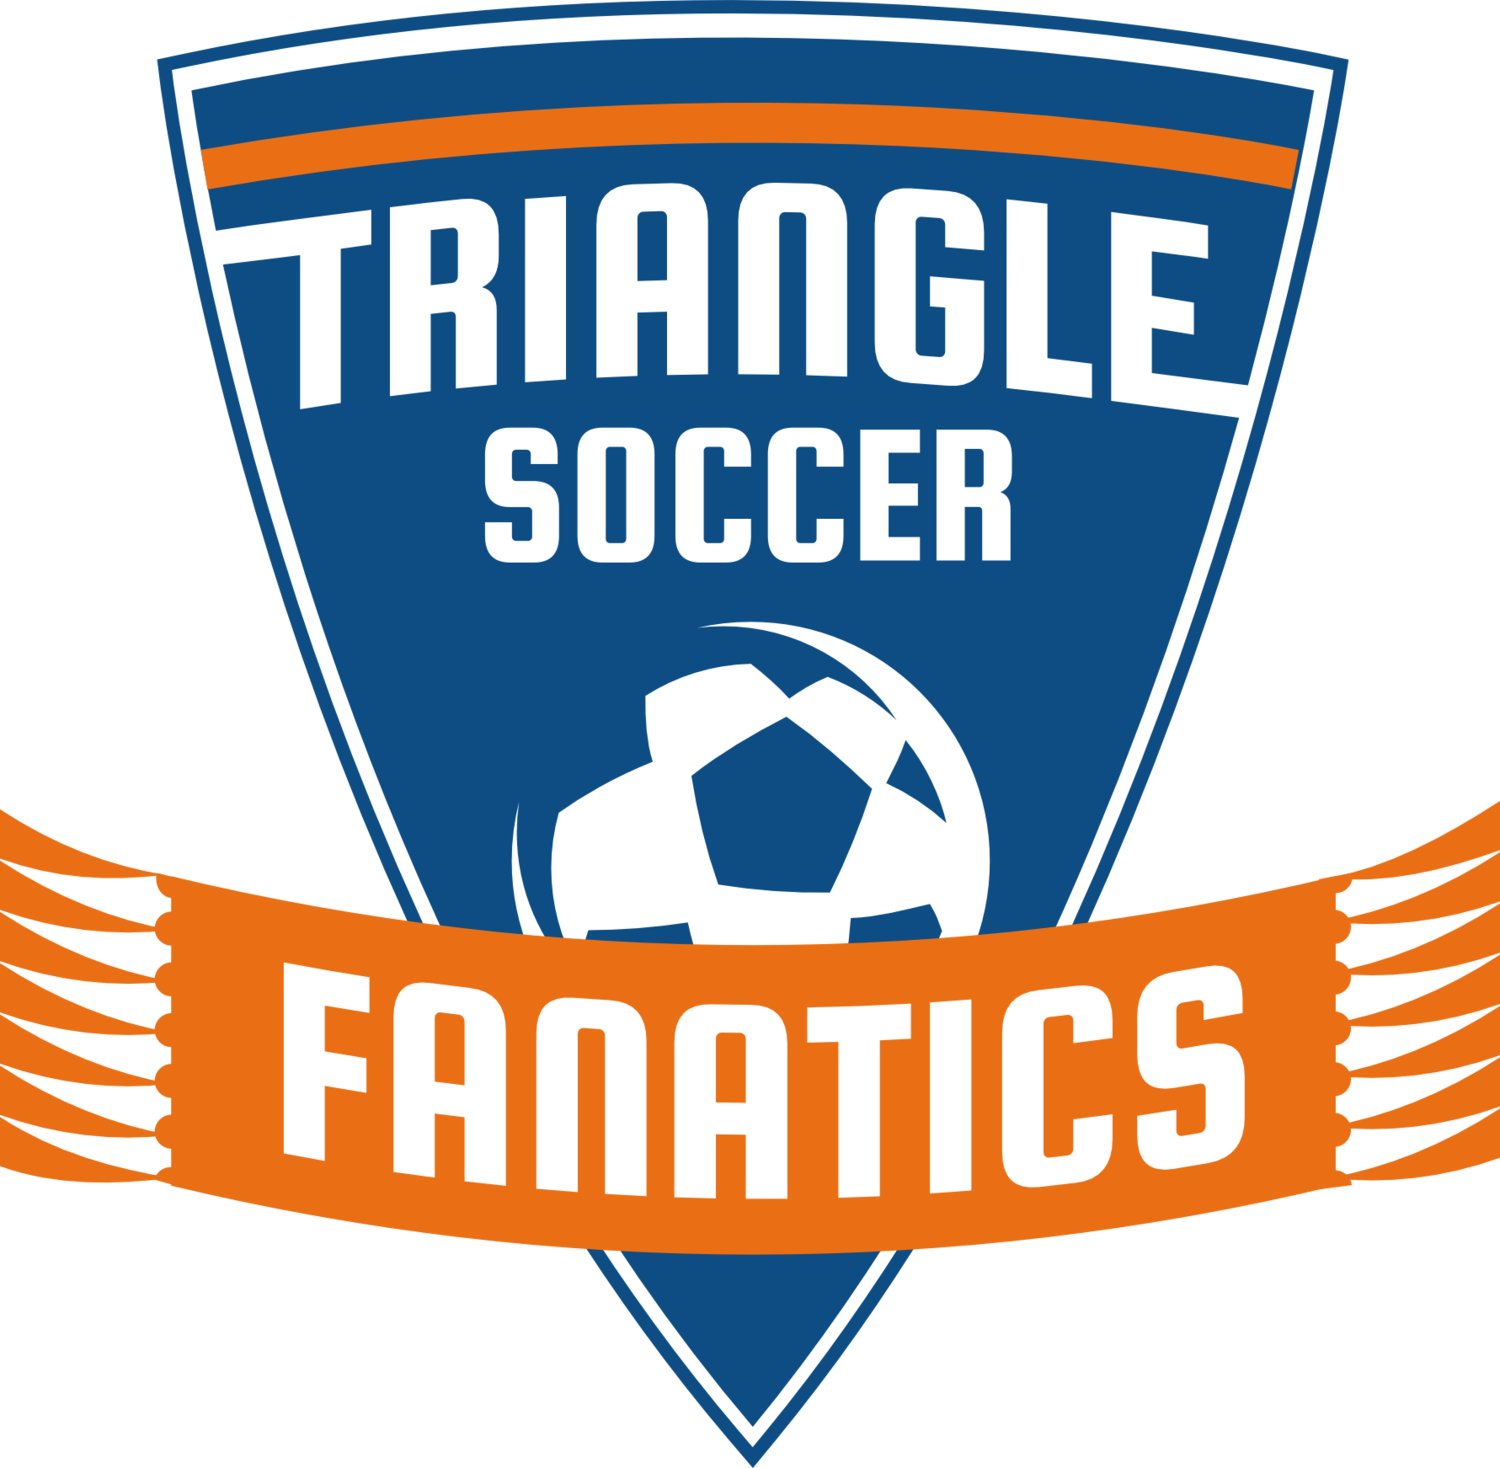 Triangle Soccer Fanatics